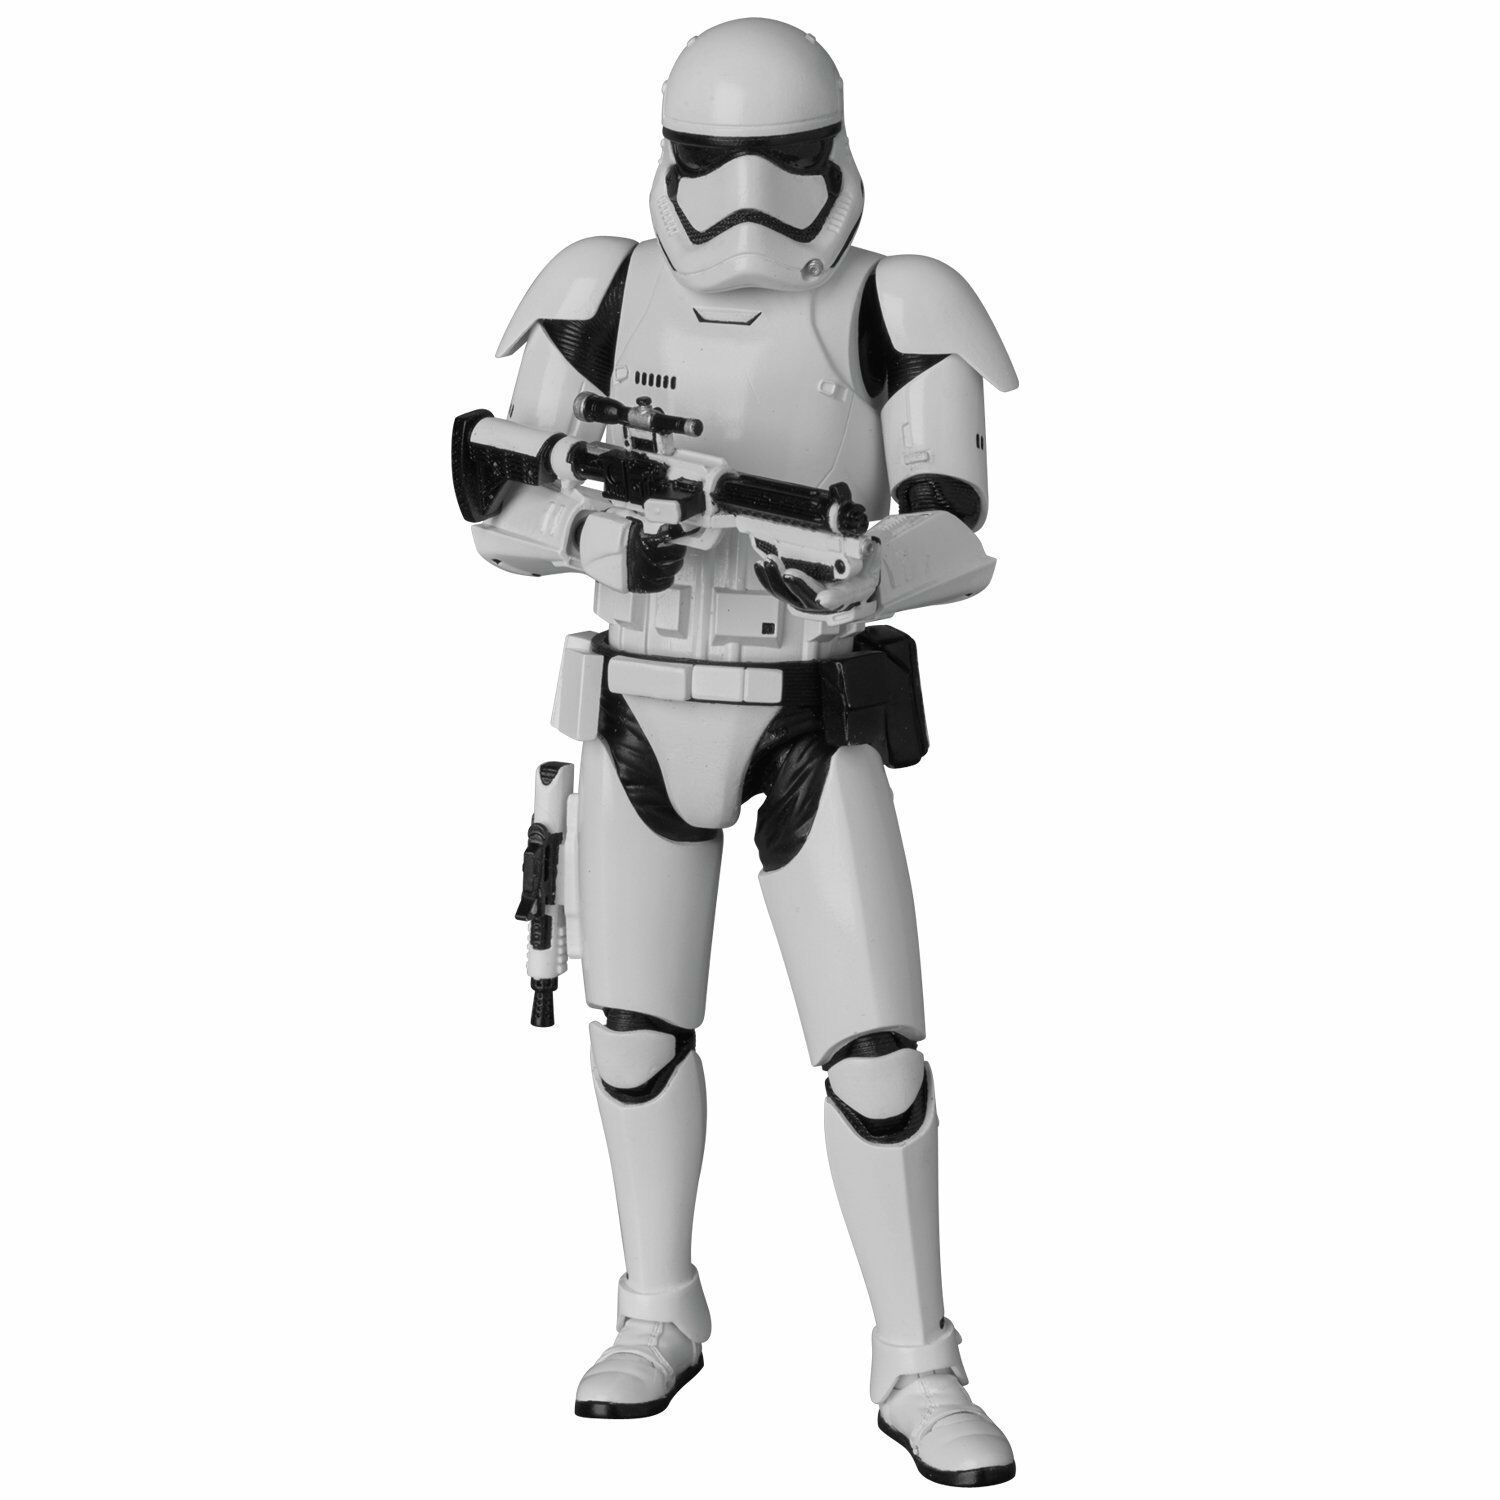 Star Wars MAFEX No.021 First Order Stormtrooper Action Figure